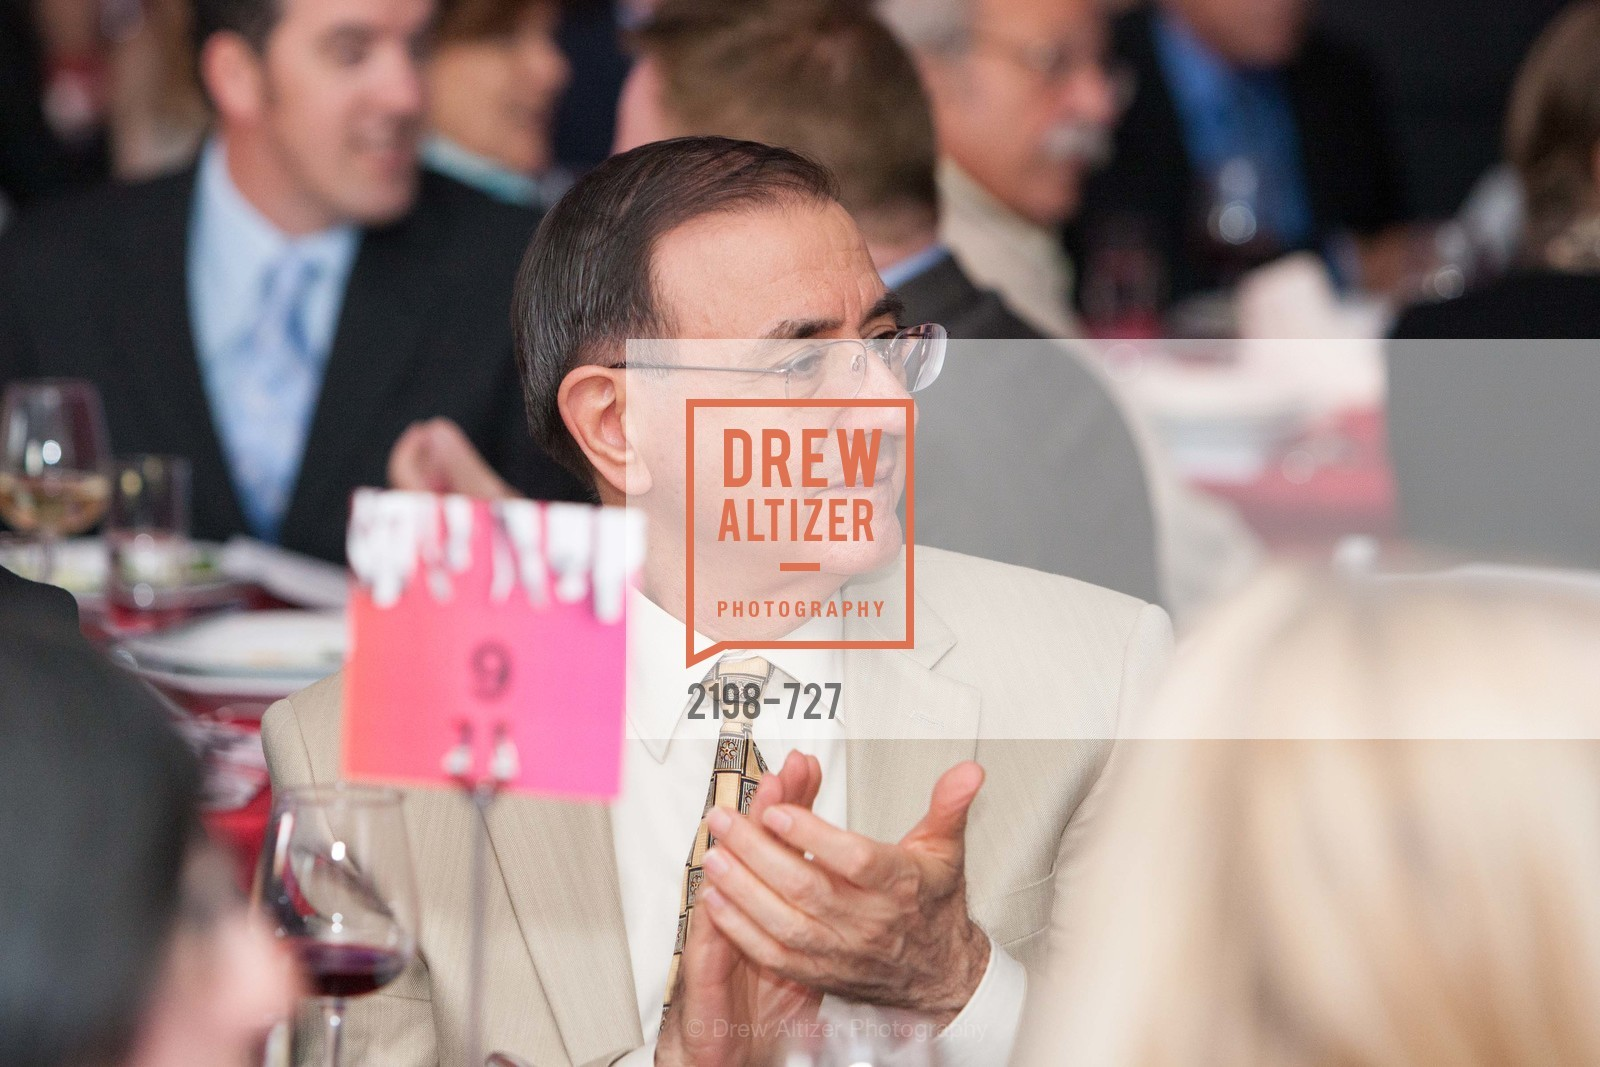 Extras, SAN FRANCISCO ART INSTITUTE Gala Honoring Art Visionary and Advocate ROSELYNE CHROMAN SWIG, May 14th, 2015, Photo,Drew Altizer, Drew Altizer Photography, full-service agency, private events, San Francisco photographer, photographer california